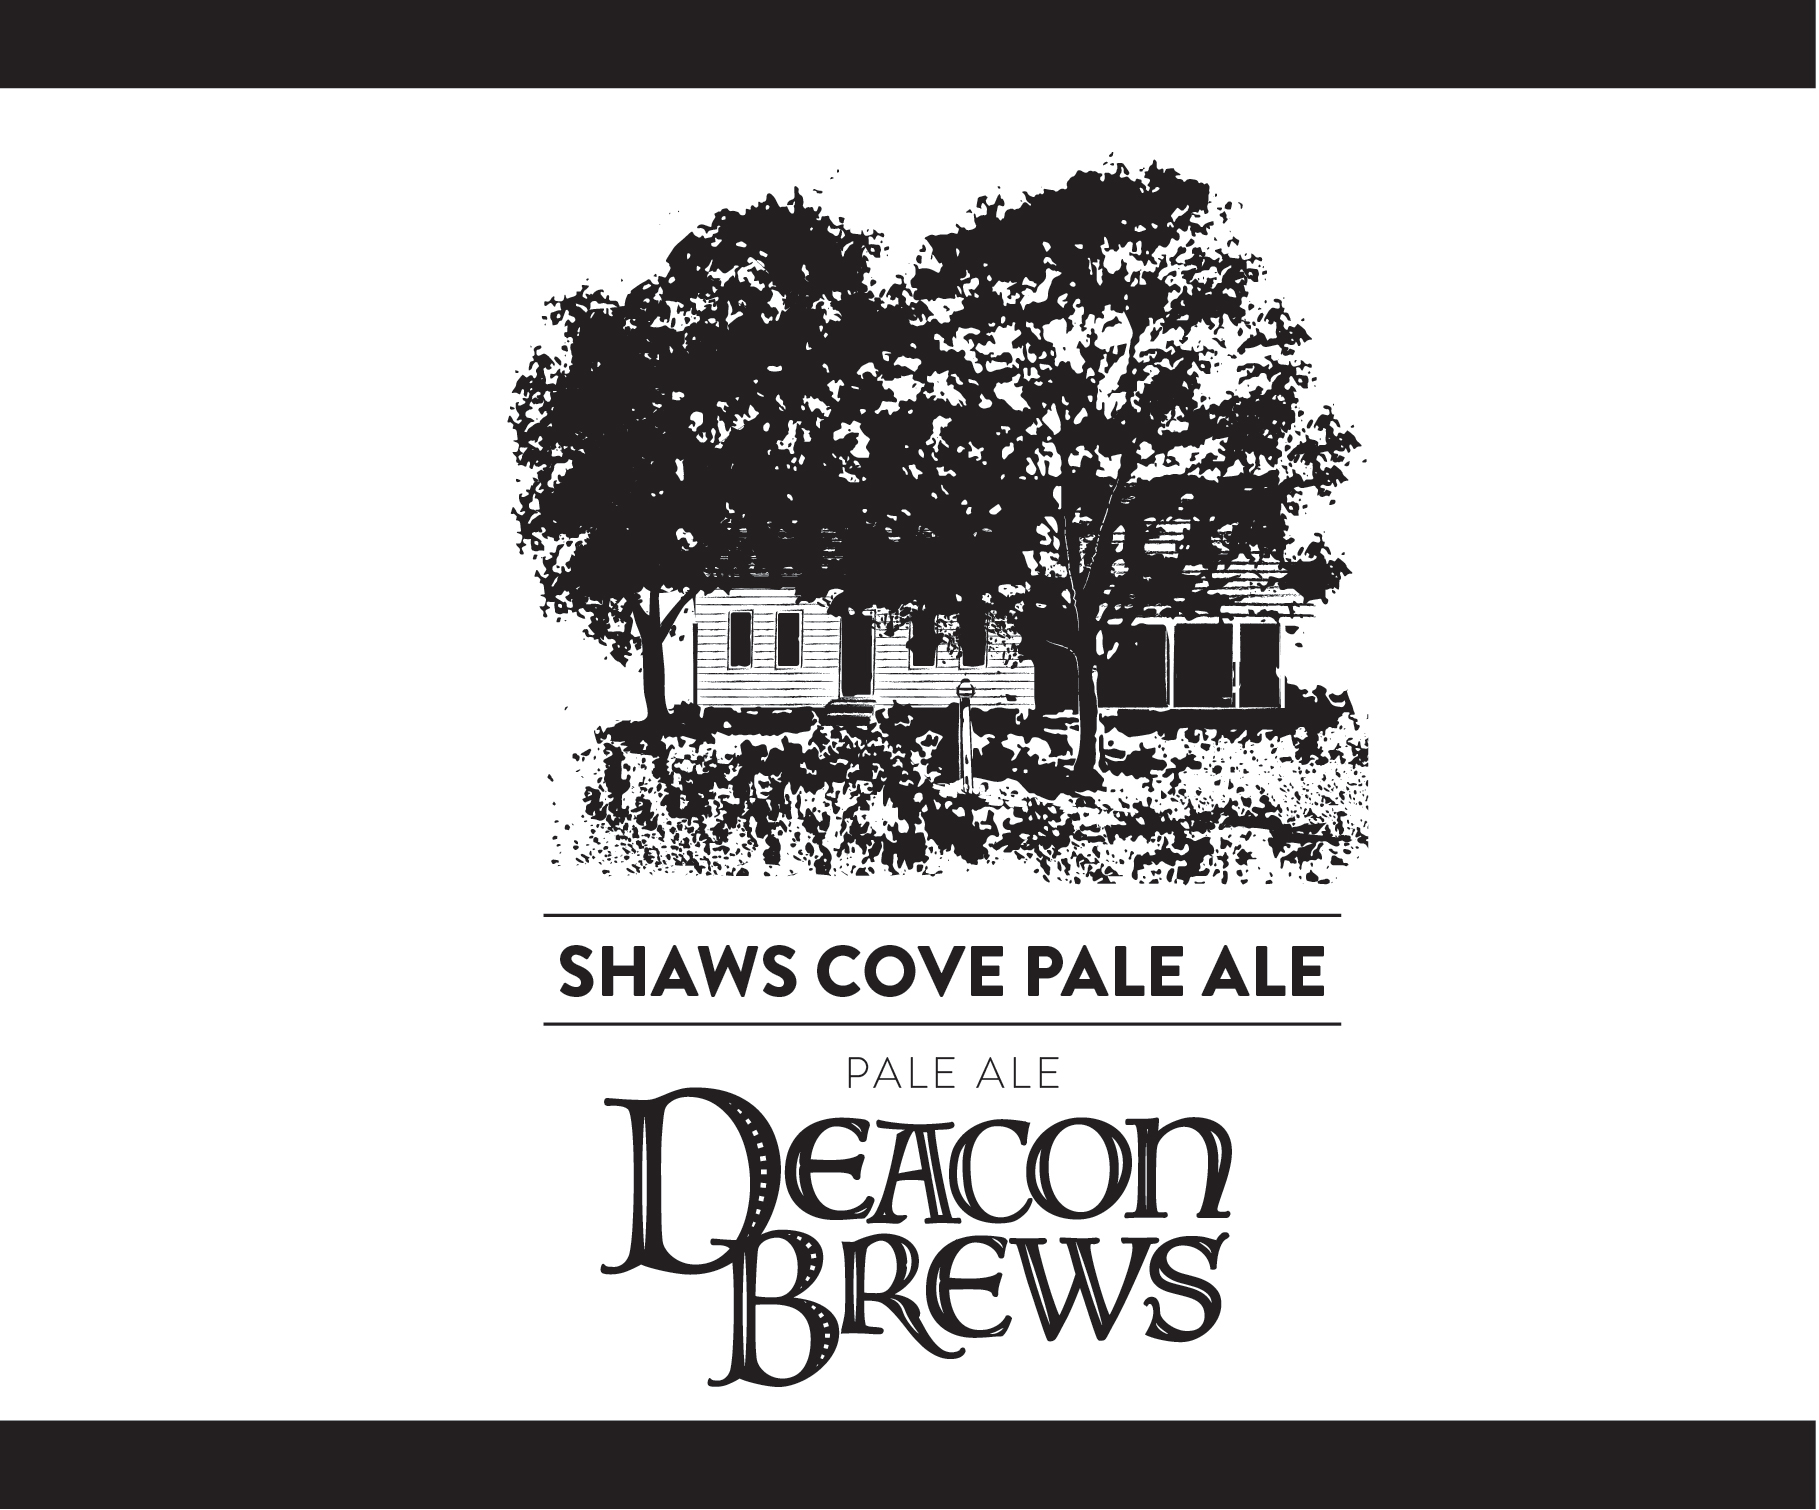 AveryLabels_Shaw's Cove Pale Ale.jpg